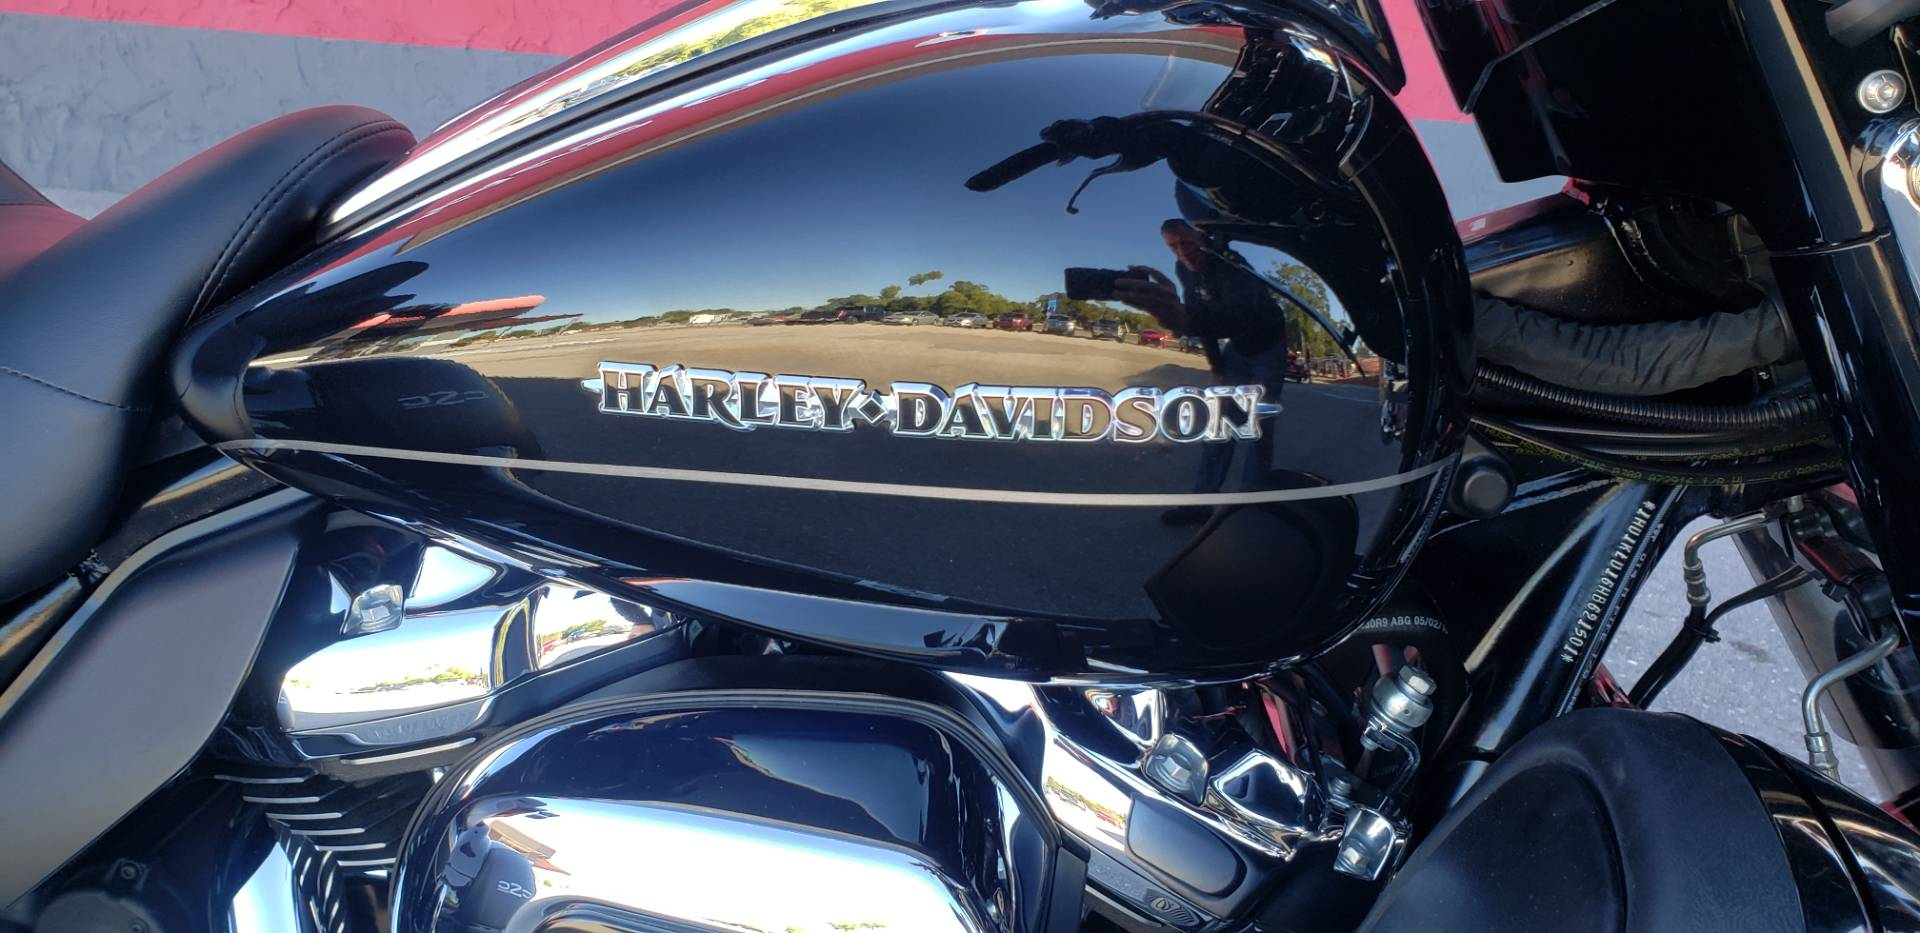 2017 Harley Davidson Ultra Limited in Fort Myers, Florida - Photo 7